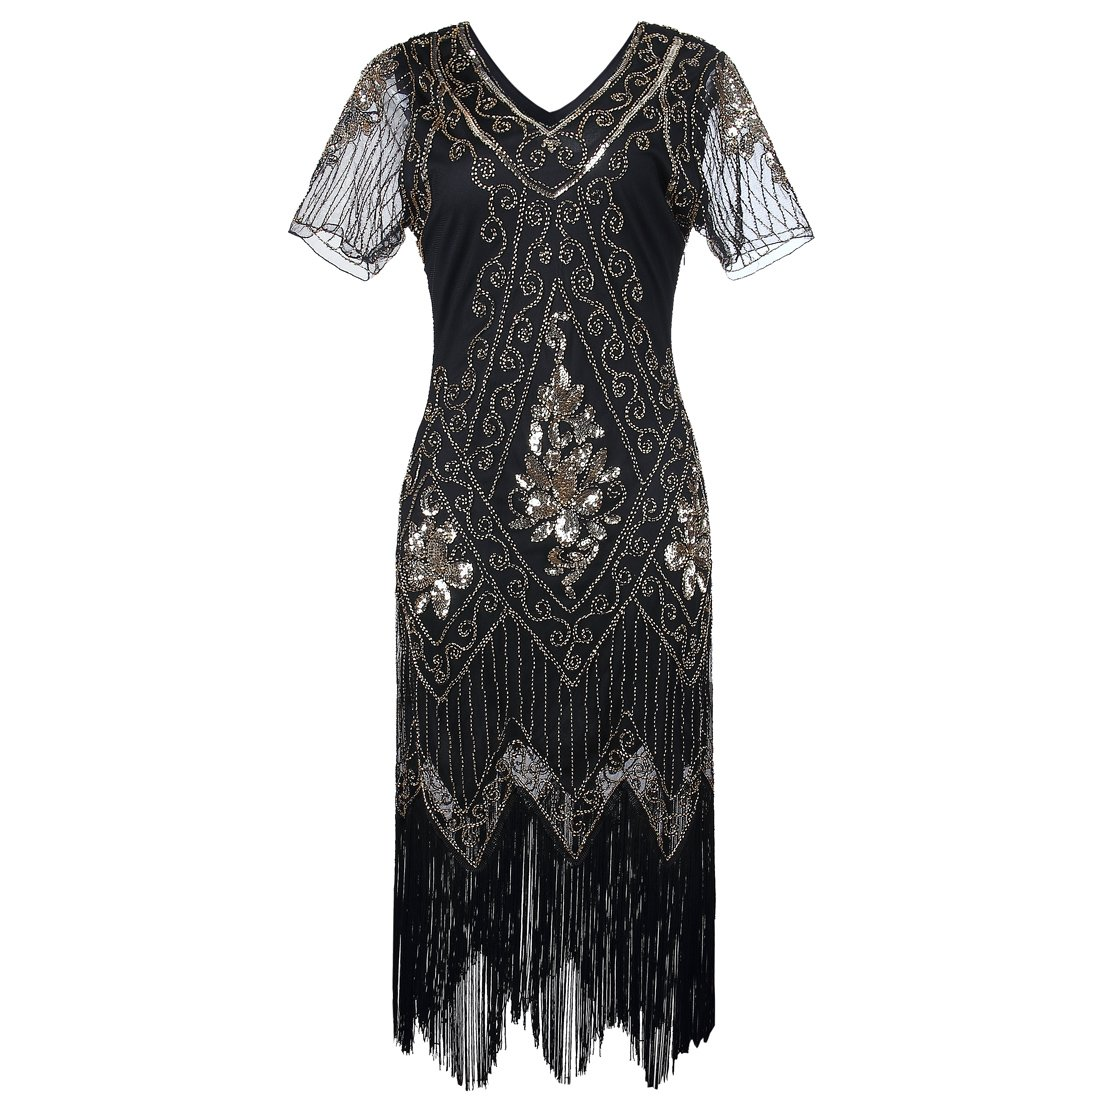 1920s Dresses UK | Flapper, Gatsby, Downton Abbey Dress JaosWish Gatsby 1920s Flapper Dress Women Vintage Sequin Fringe Beaded Art Deco Fancy Dress with Sleeve for Party Prom £38.99 AT vintagedancer.com